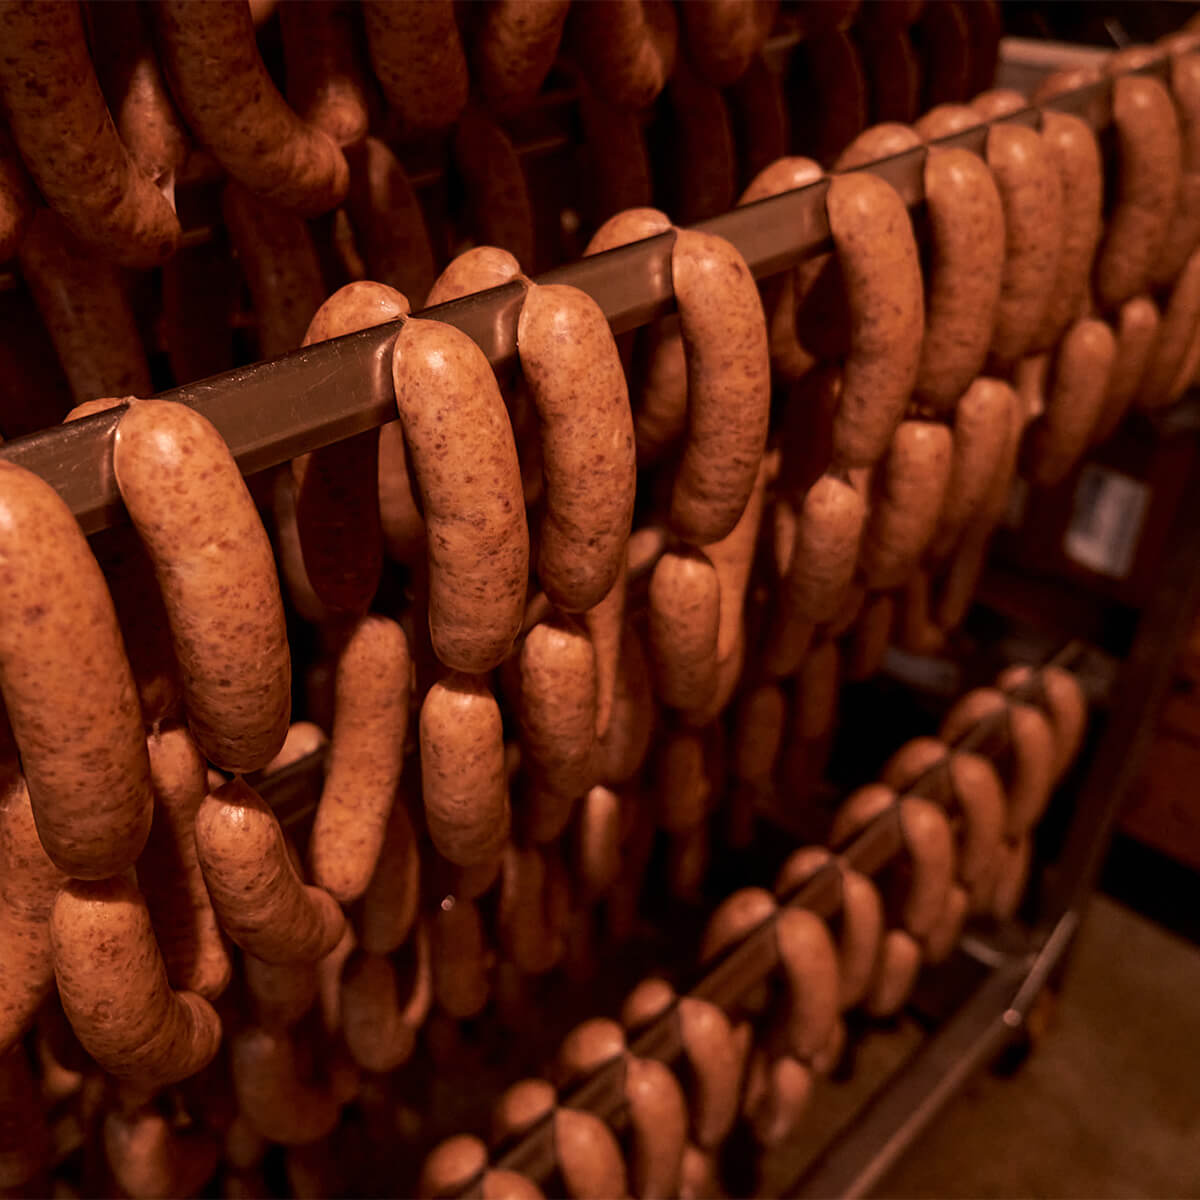 Image of smoked sausages